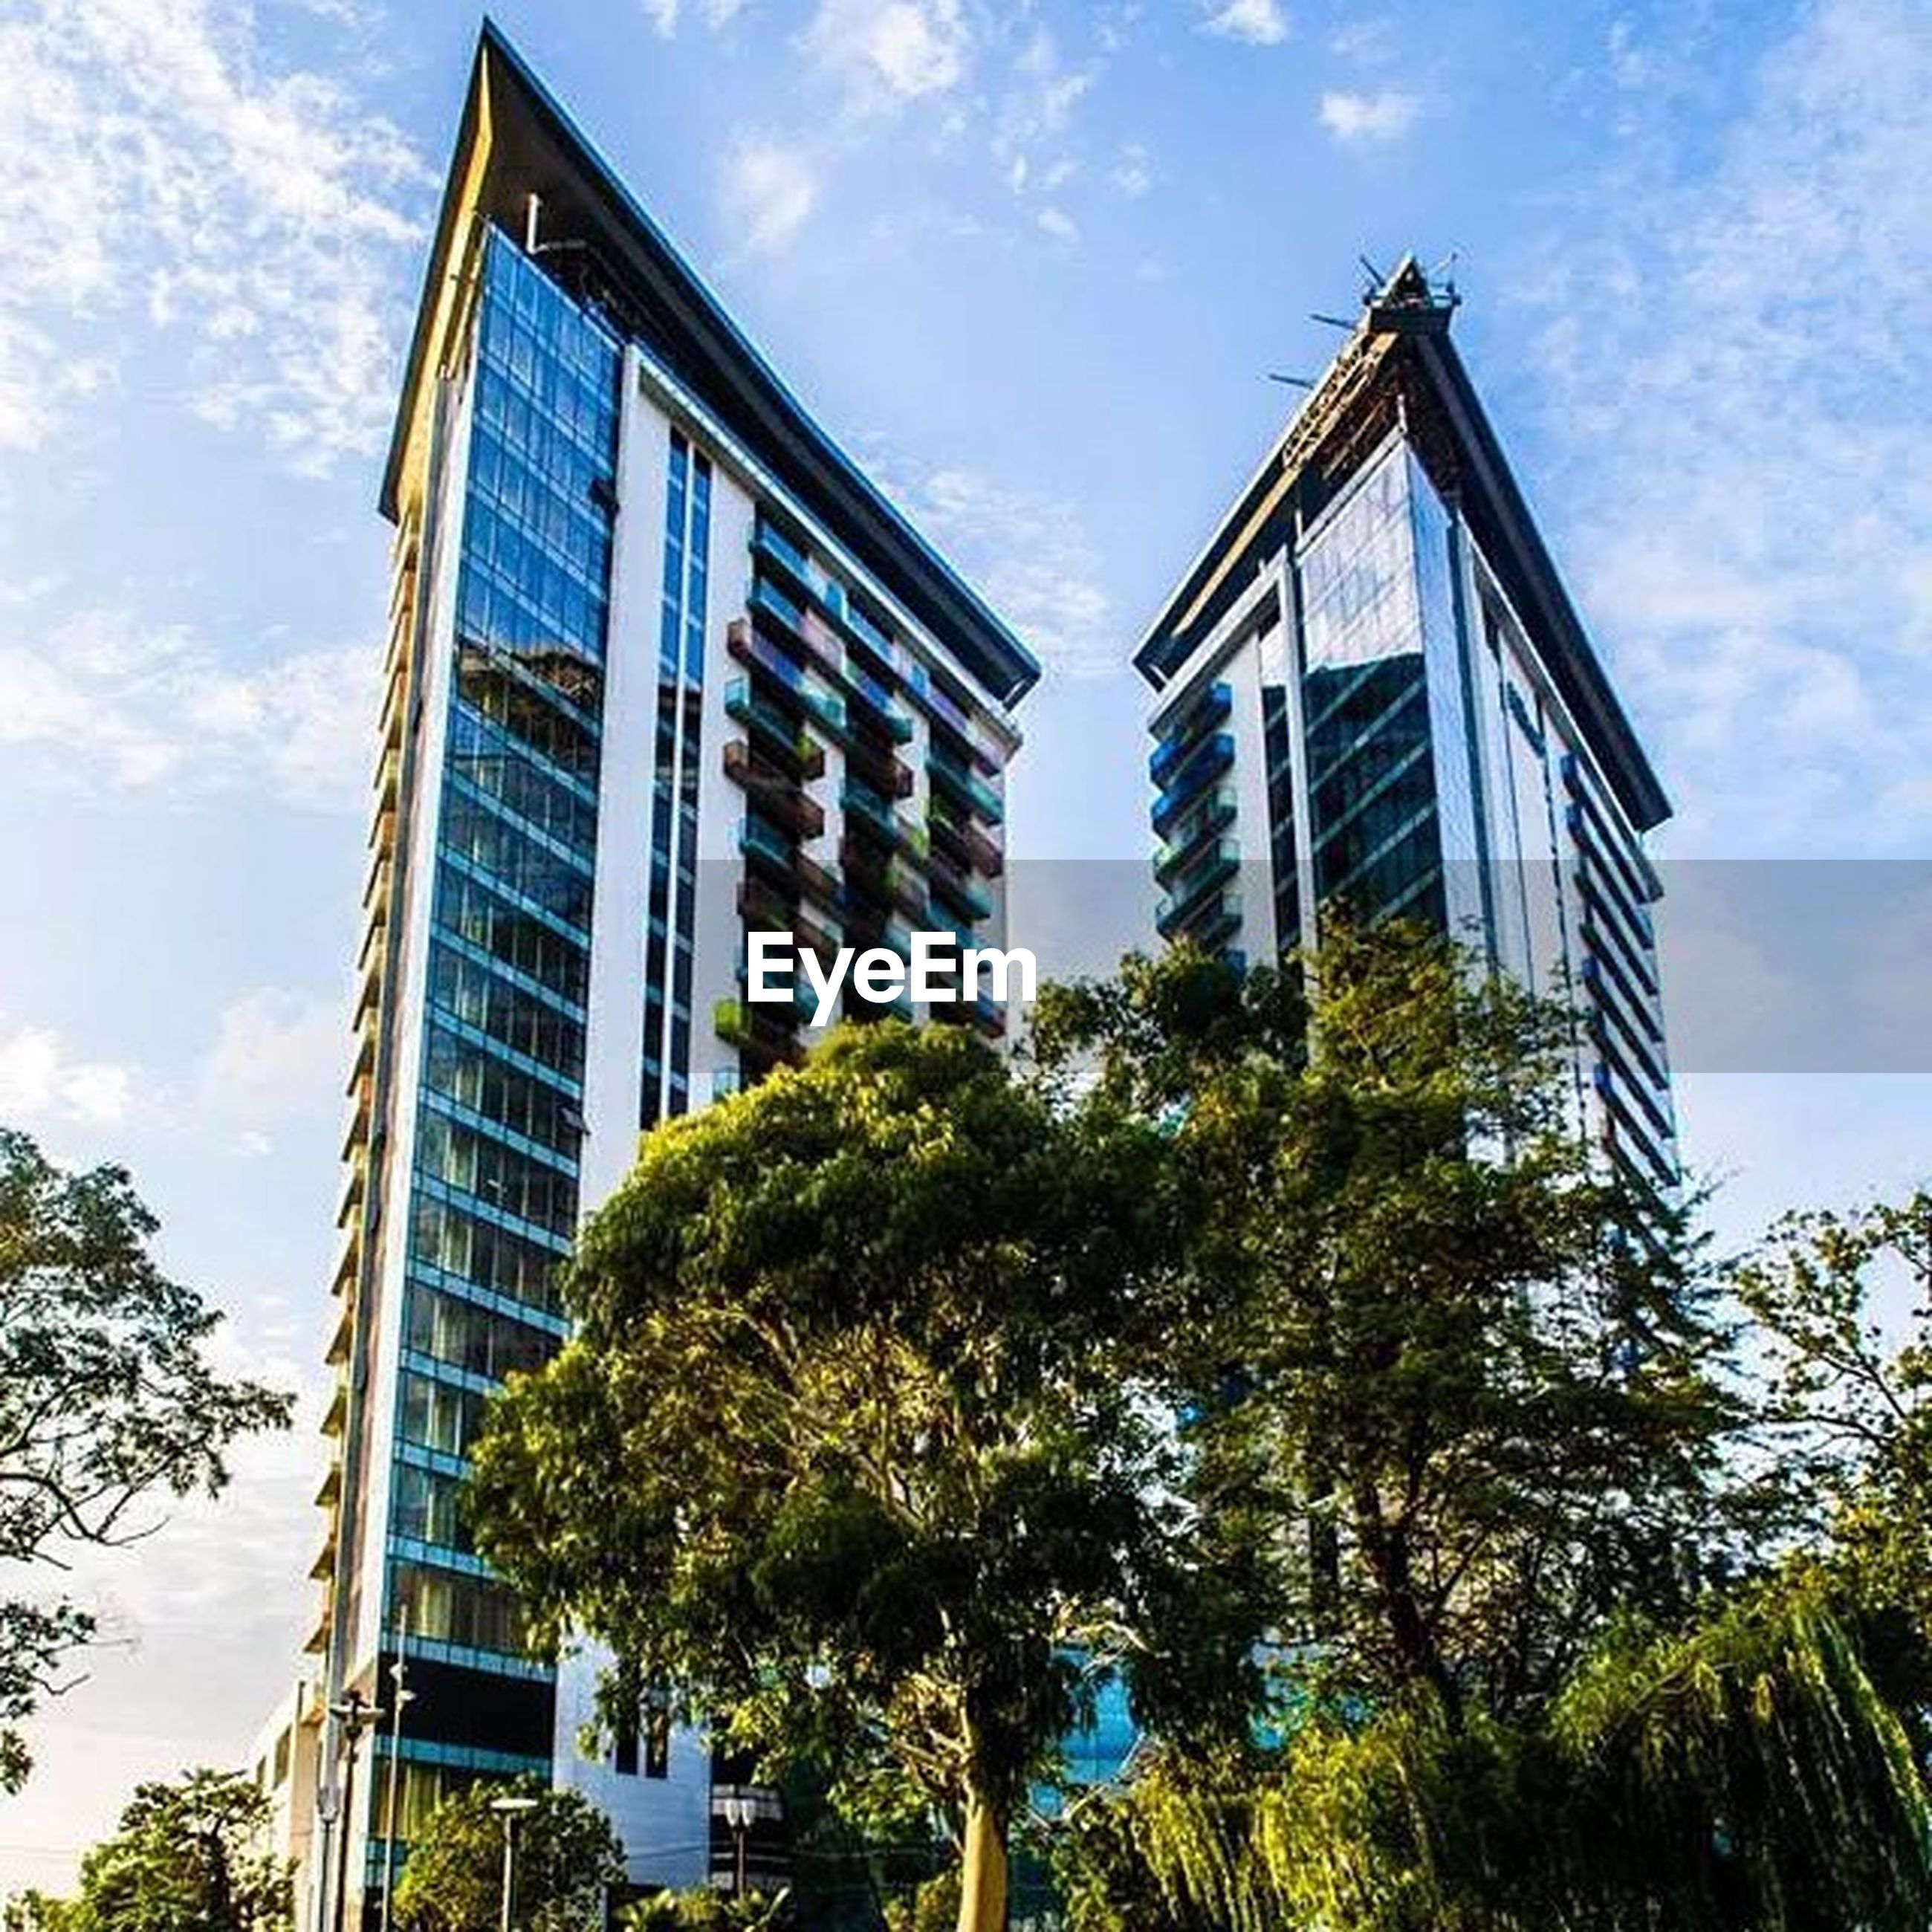 architecture, building exterior, built structure, low angle view, sky, tree, blue, cloud - sky, cloud, building, window, day, sunlight, glass - material, outdoors, city, growth, no people, residential building, residential structure